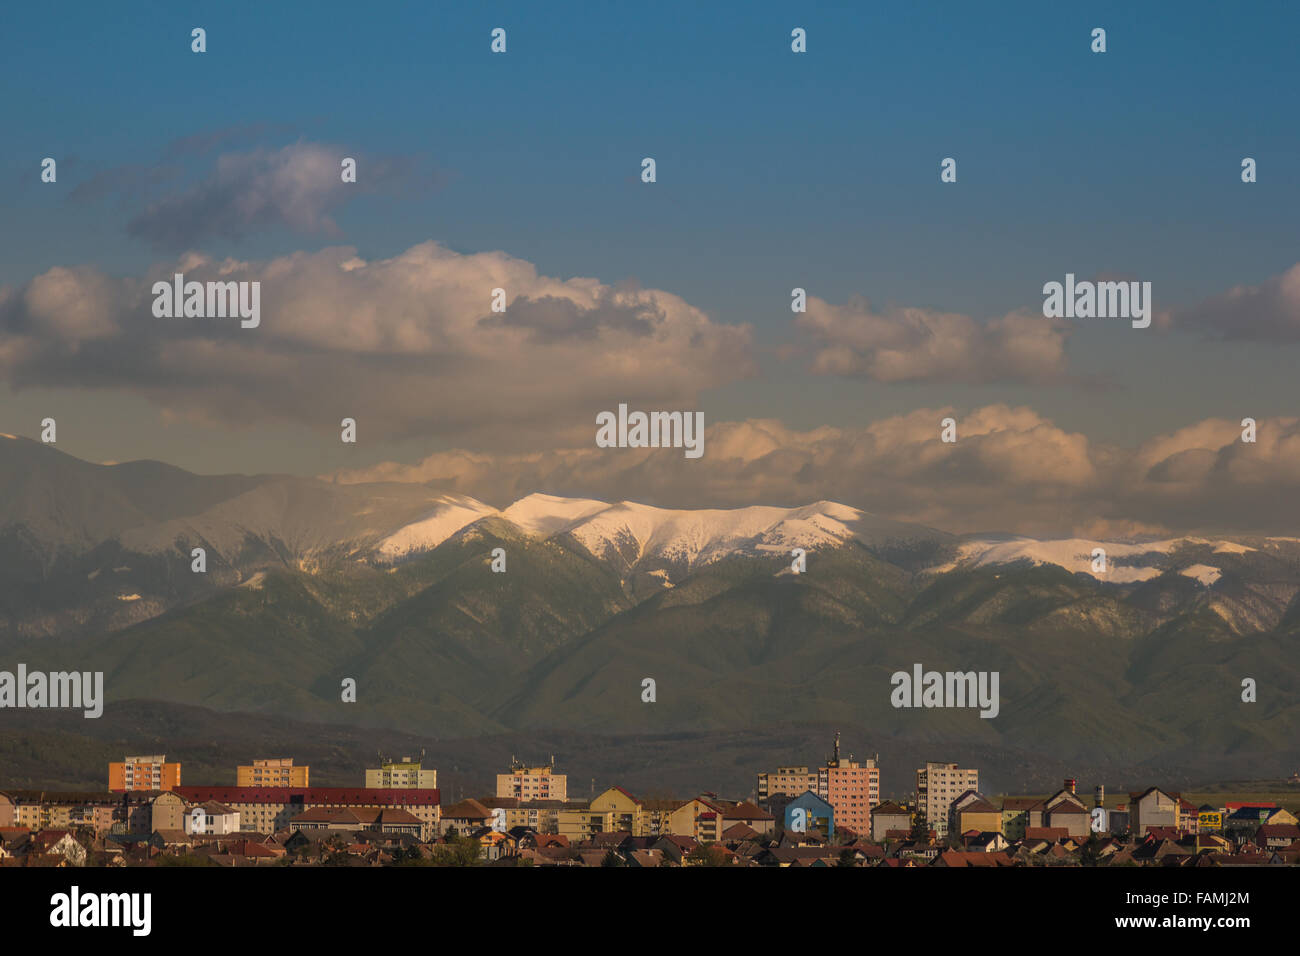 Winter landscape with an residential buildings from a city in the foreground and mountains in the background - Stock Image